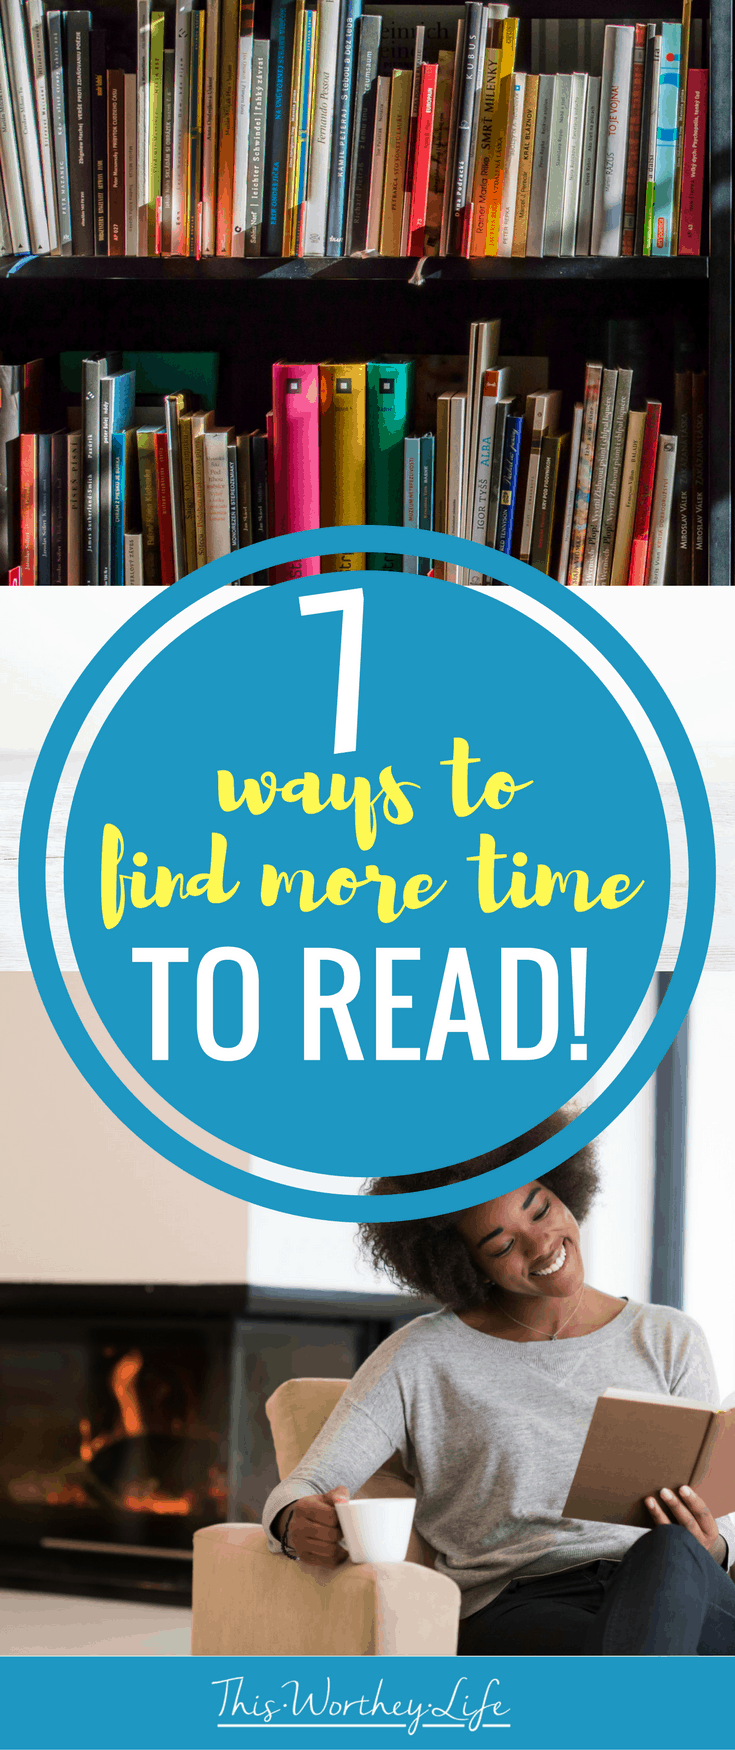 Finding the time to read these days can be a struggle. If you want to jump back into reading, but don't know where to find the time, read my tips on 7 ways to find more time to on the blog!